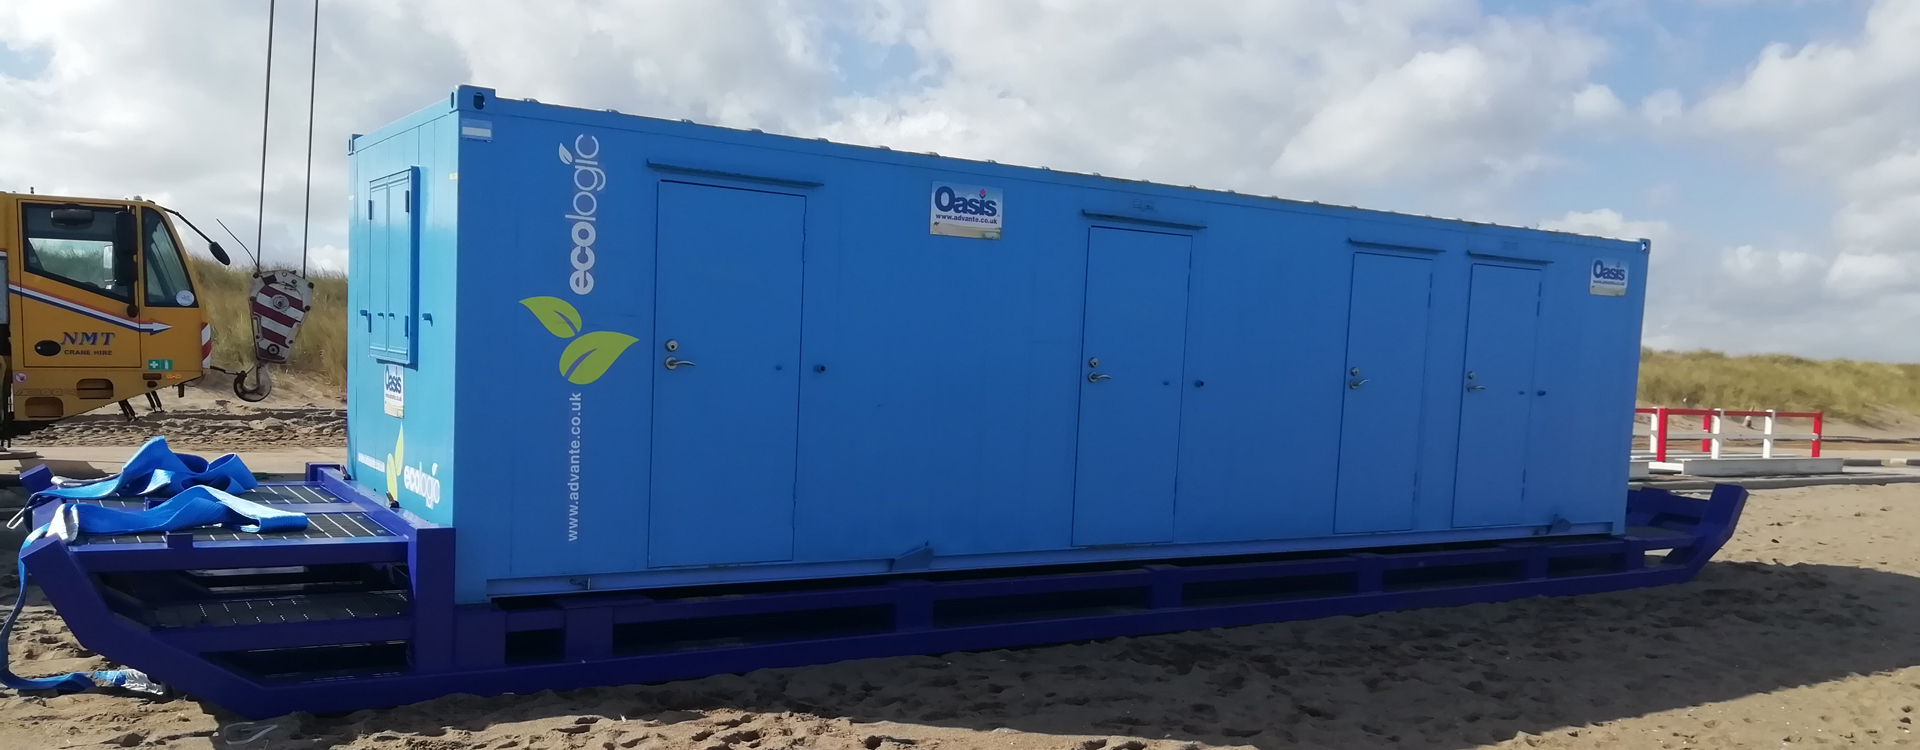 Oasis welfare unit on beach sledge for low tide work